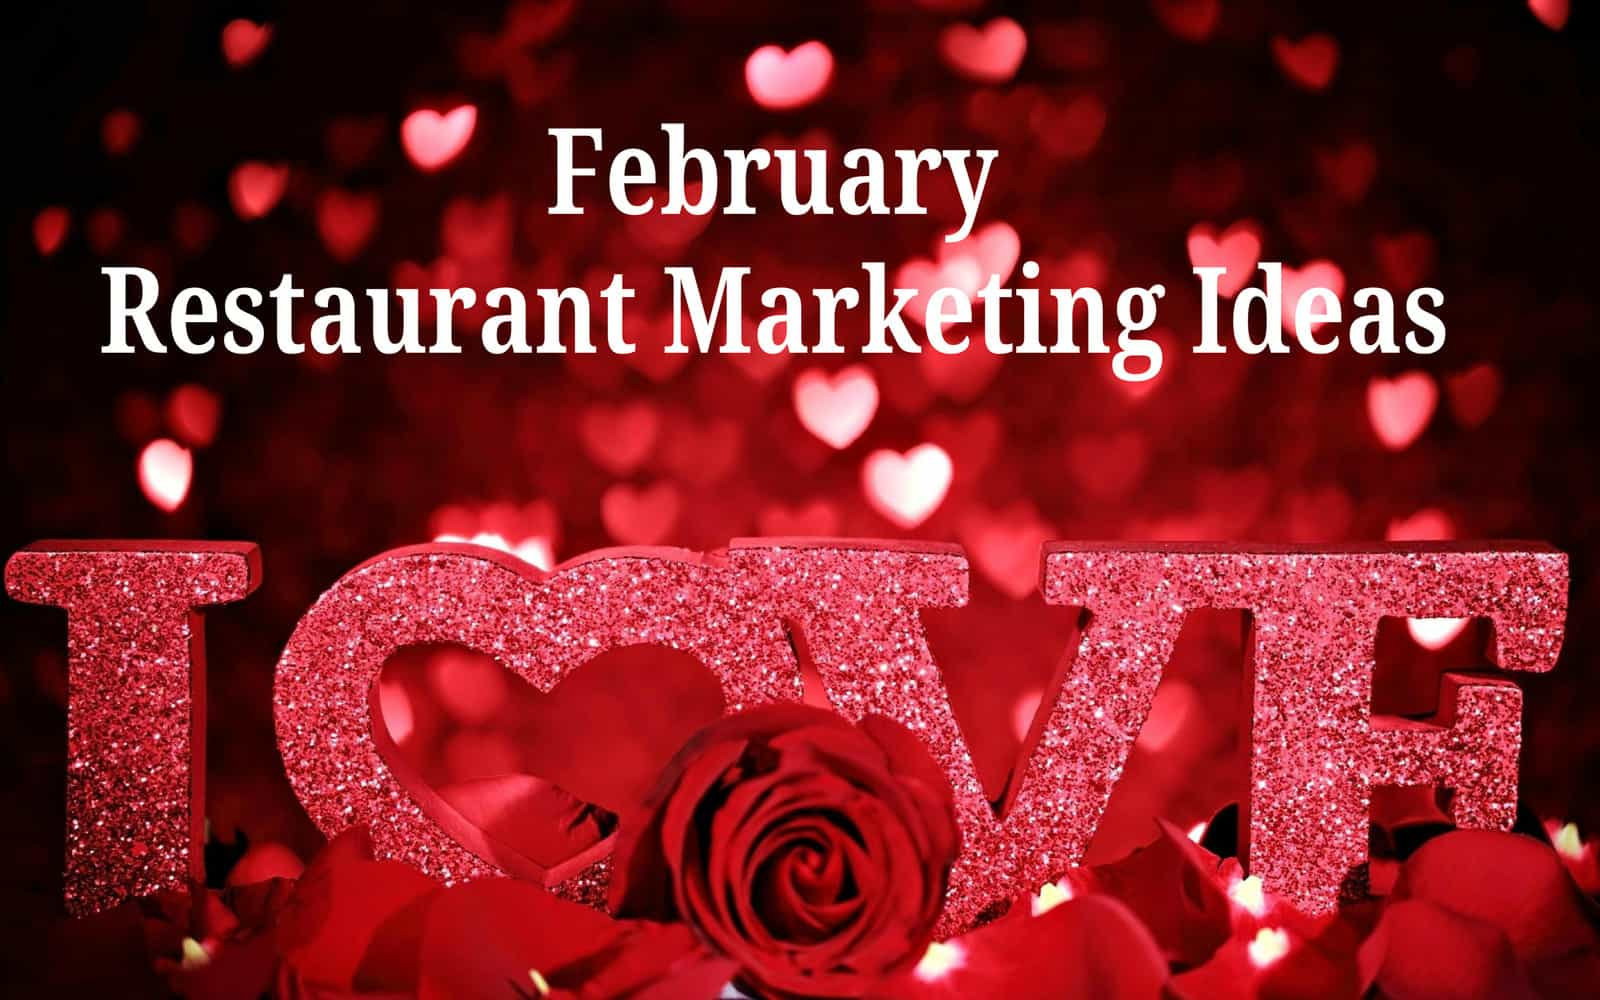 February Restaurant Marketing Ideas